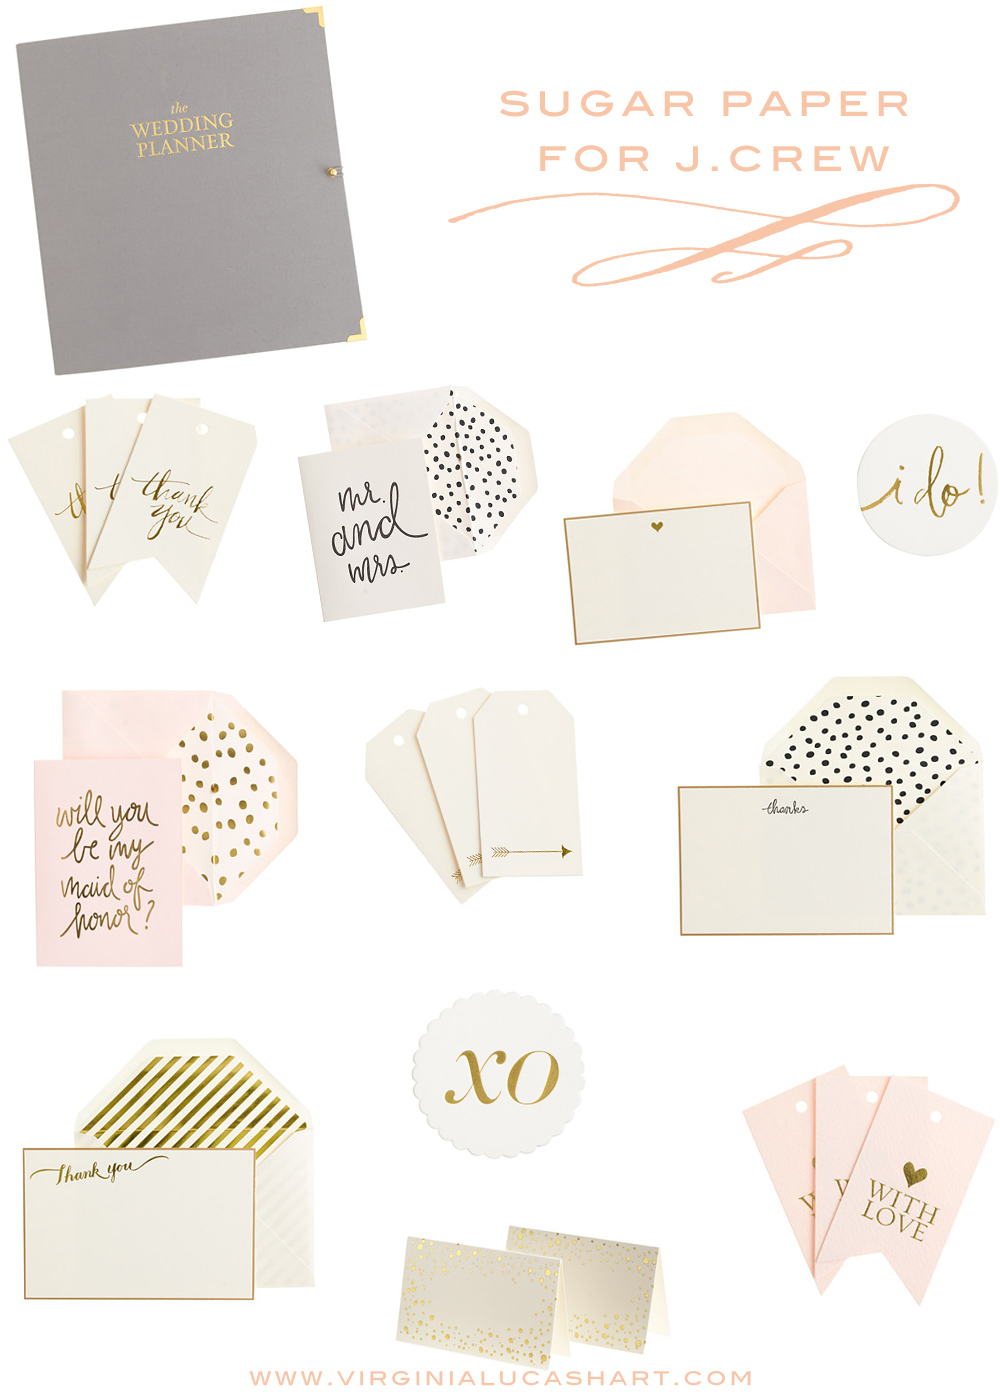 Sugar Paper for J.Crew